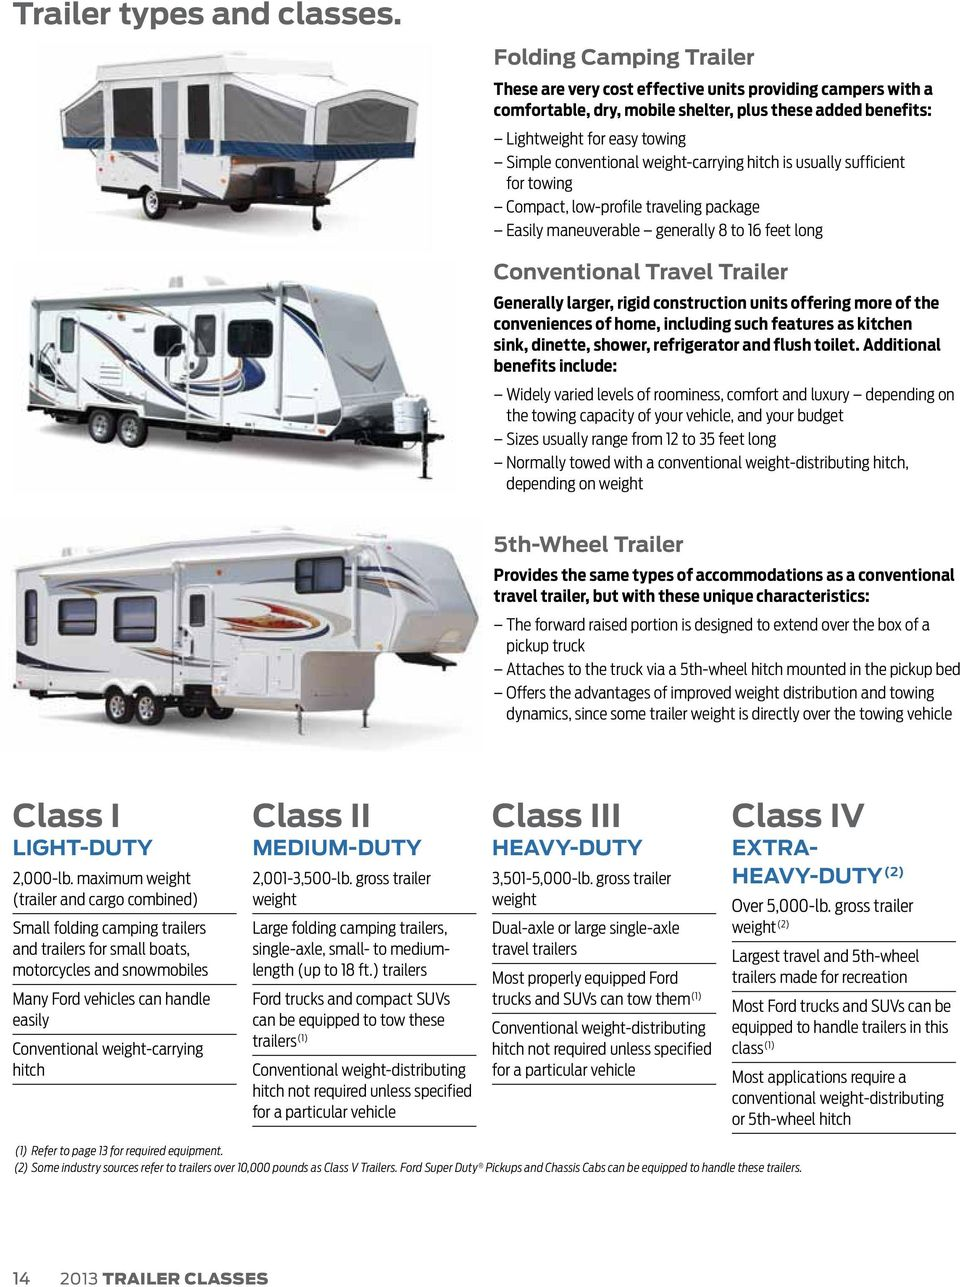 Rv Trailer Towing Guide Pdf Wiring Diagram On Applications Small Boat Or Utility Trailers Weight Carrying Hitch Is Usually Sufficient For Compact Low Profile Traveling Package